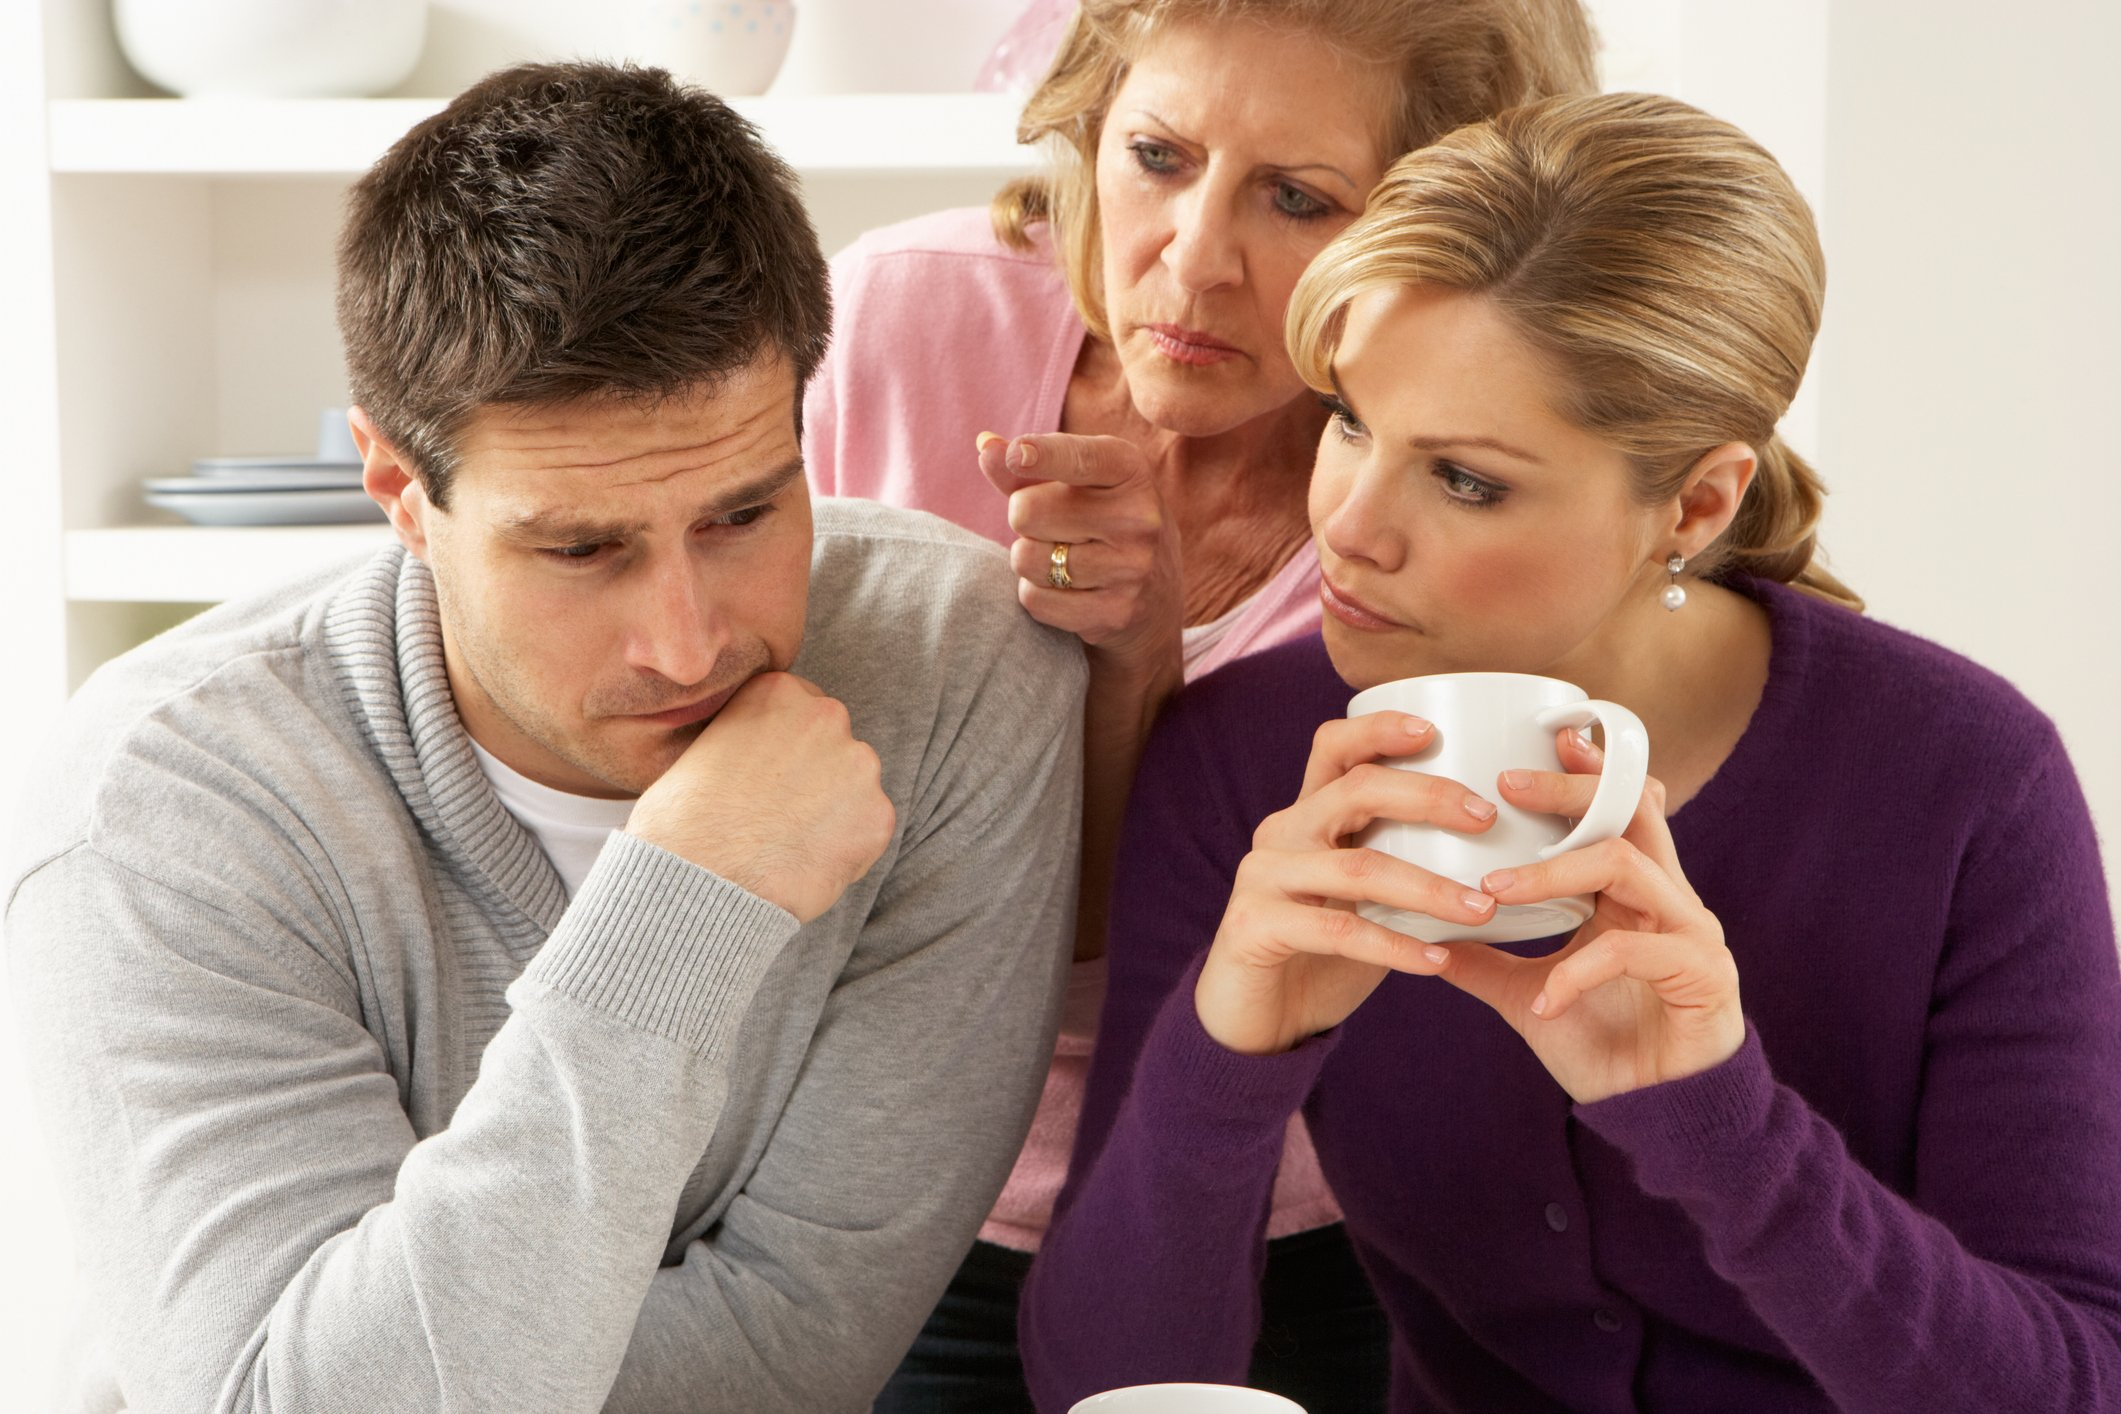 Older woman interferes in a couple's conversation | Photo: Getty Images